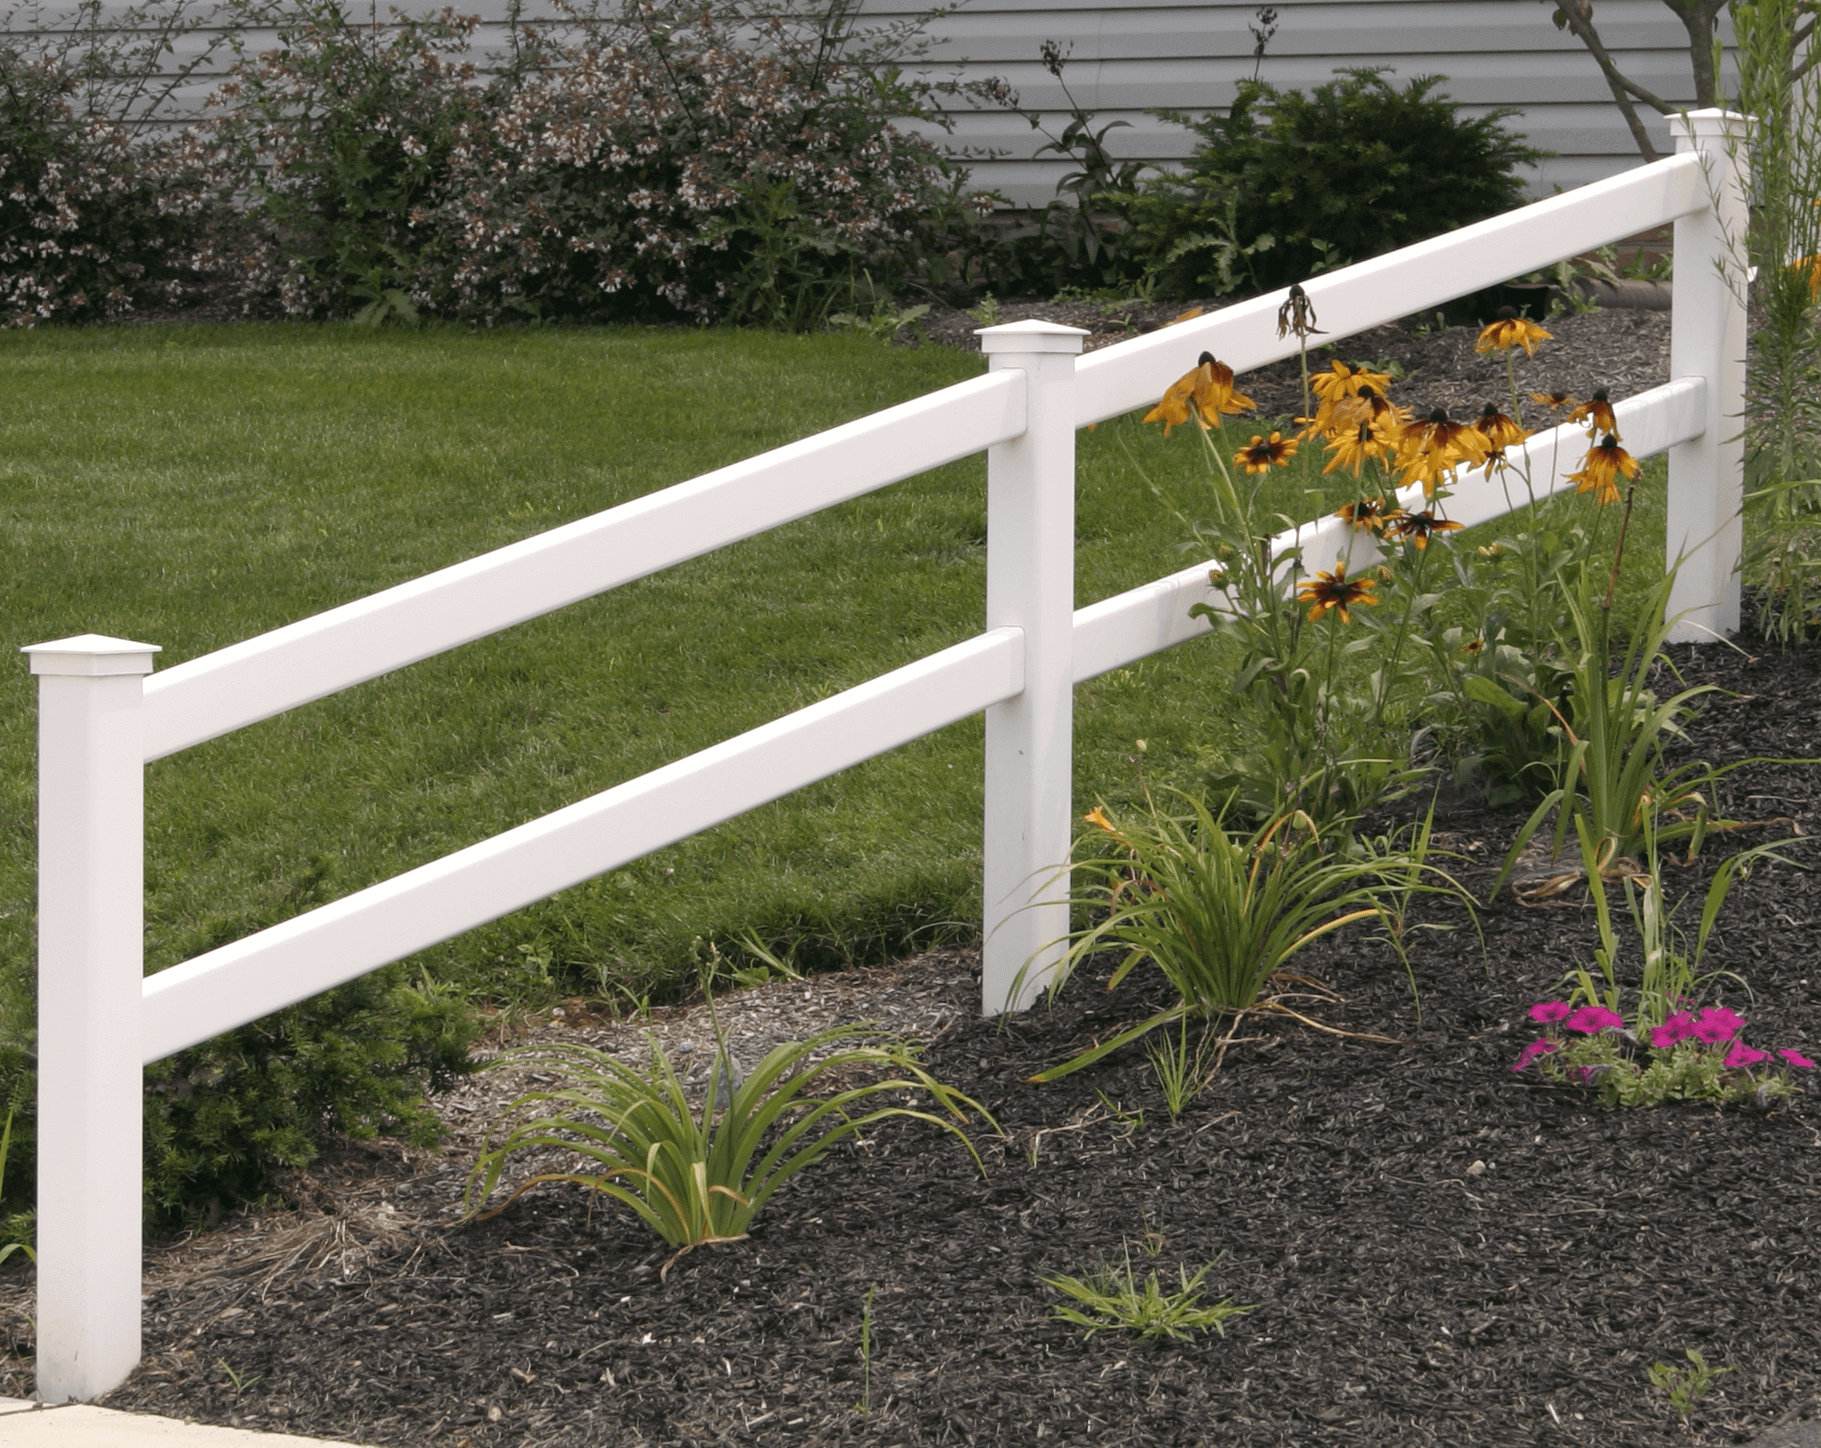 2 Rail Vinyl Fence - Superior Plastic Products